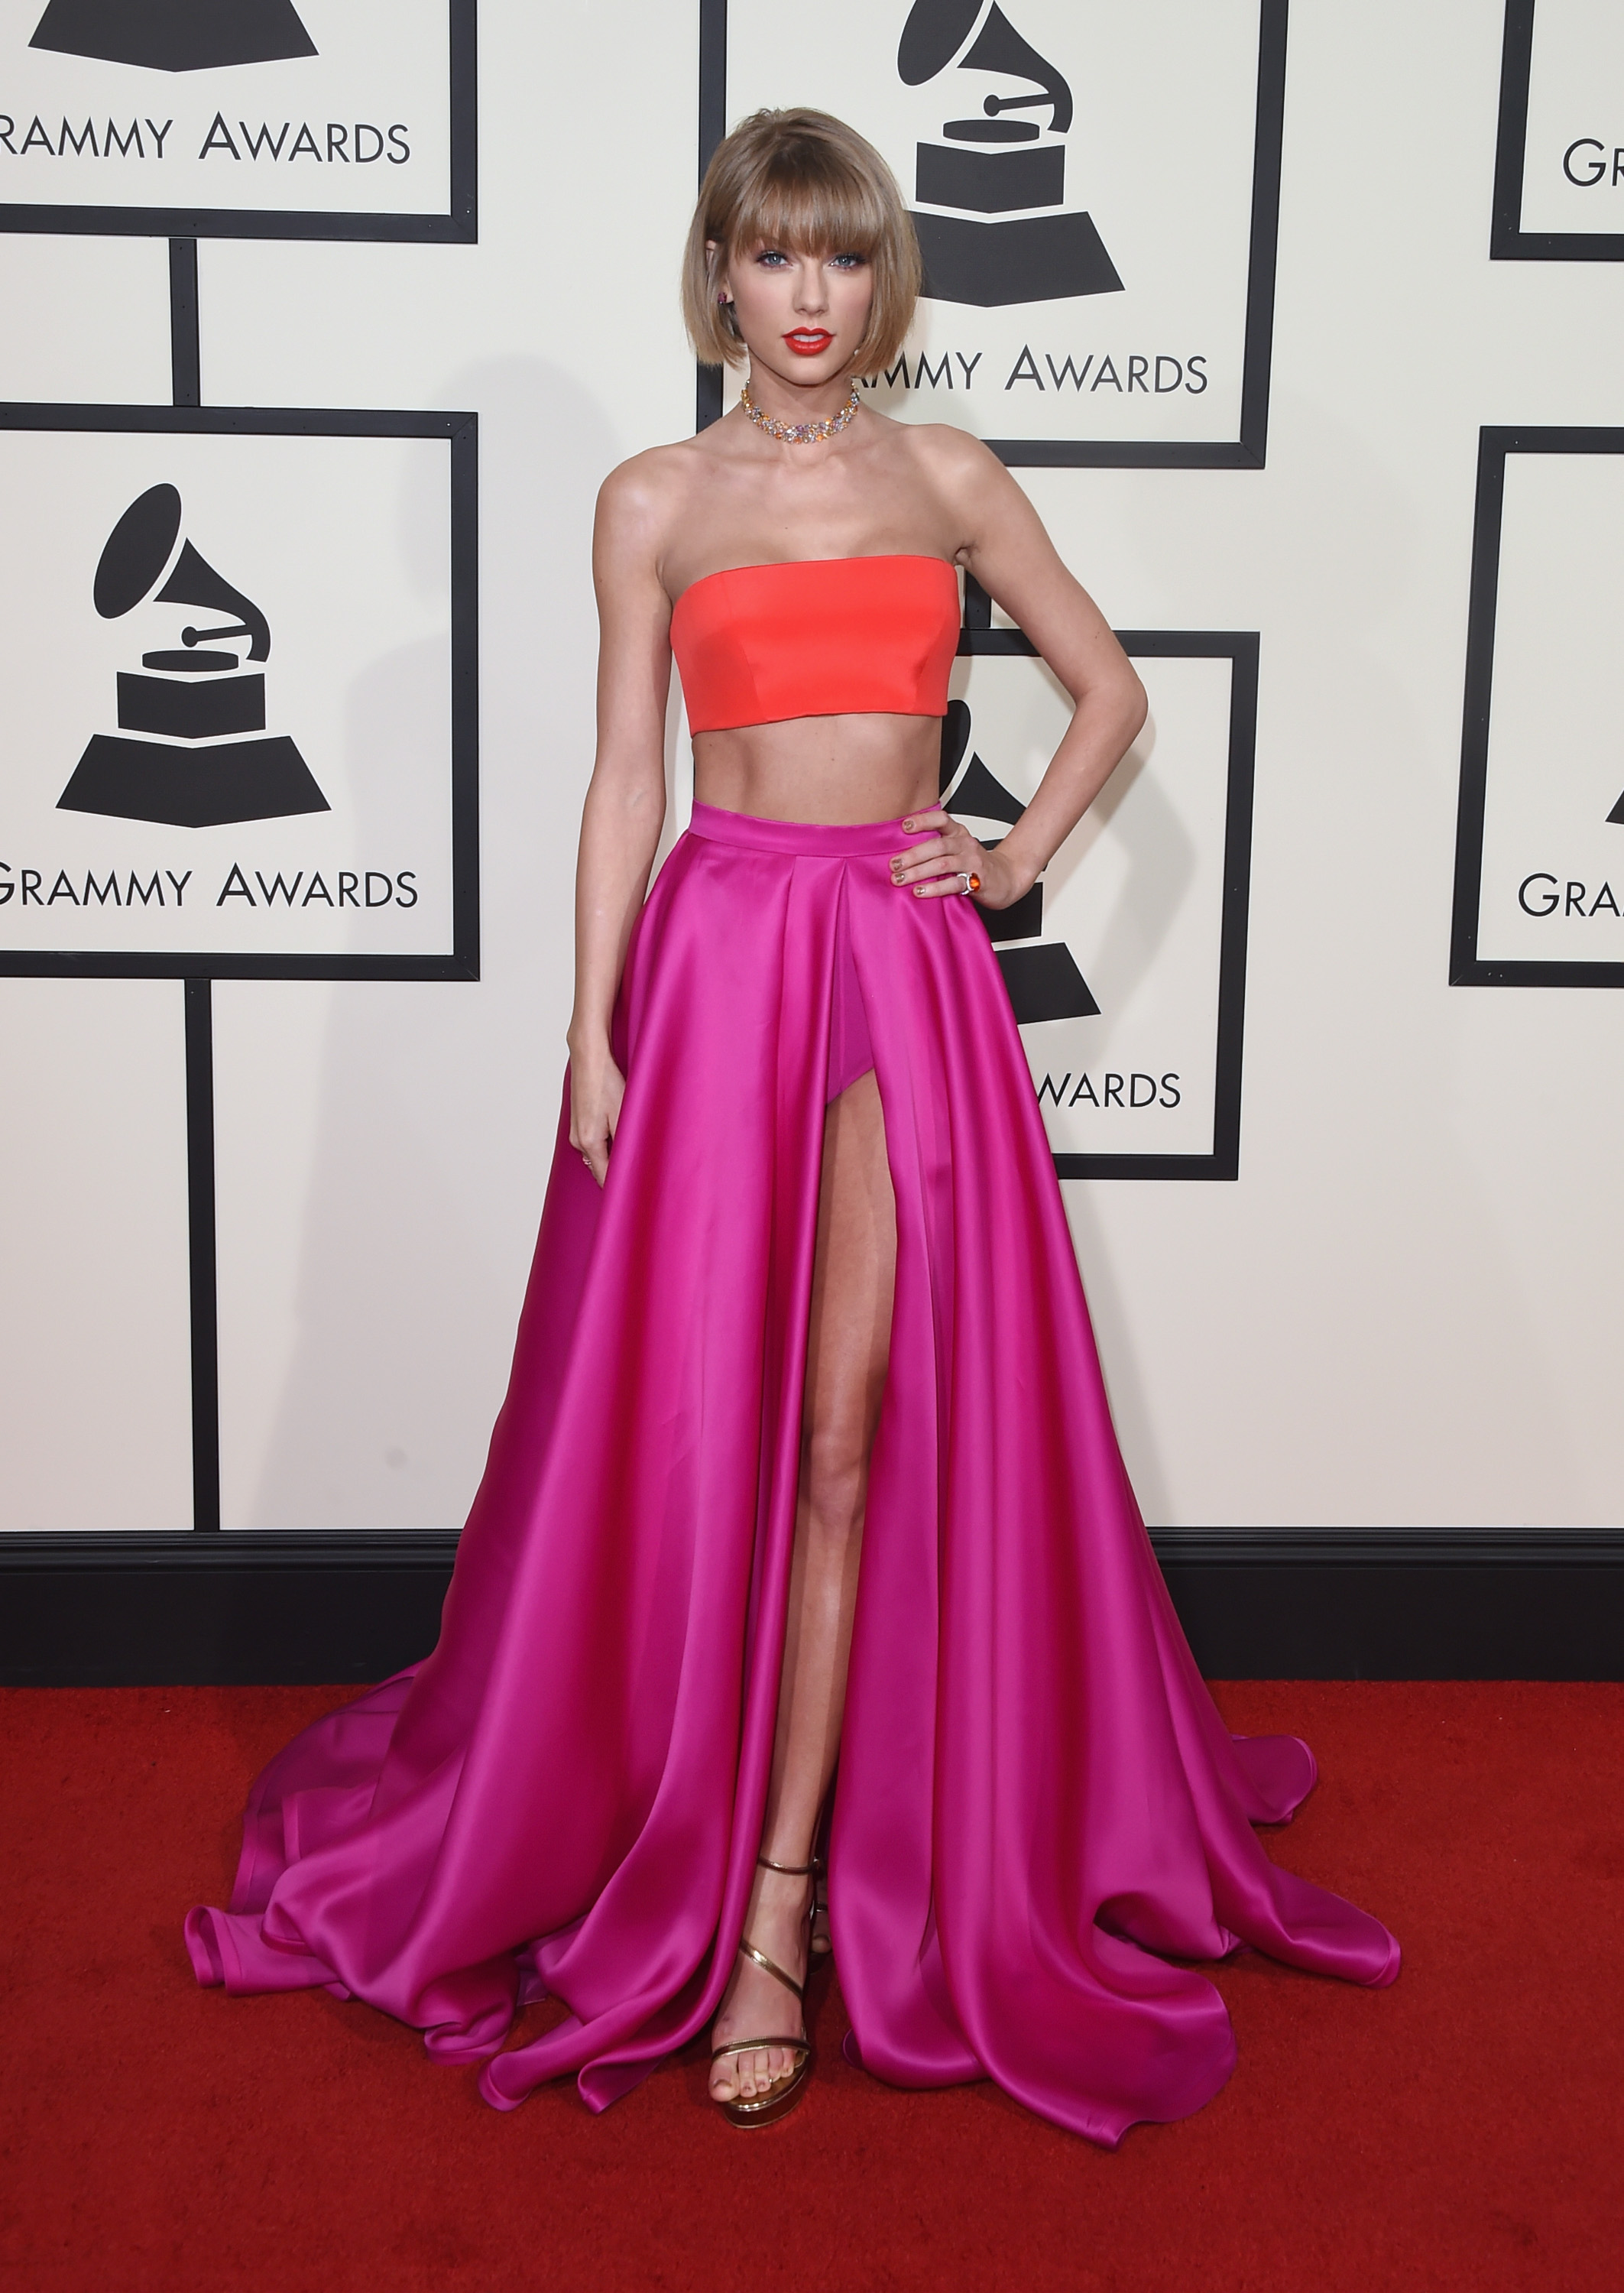 Taylor Swift's Grammys red carpet evolution, from 2008 until now